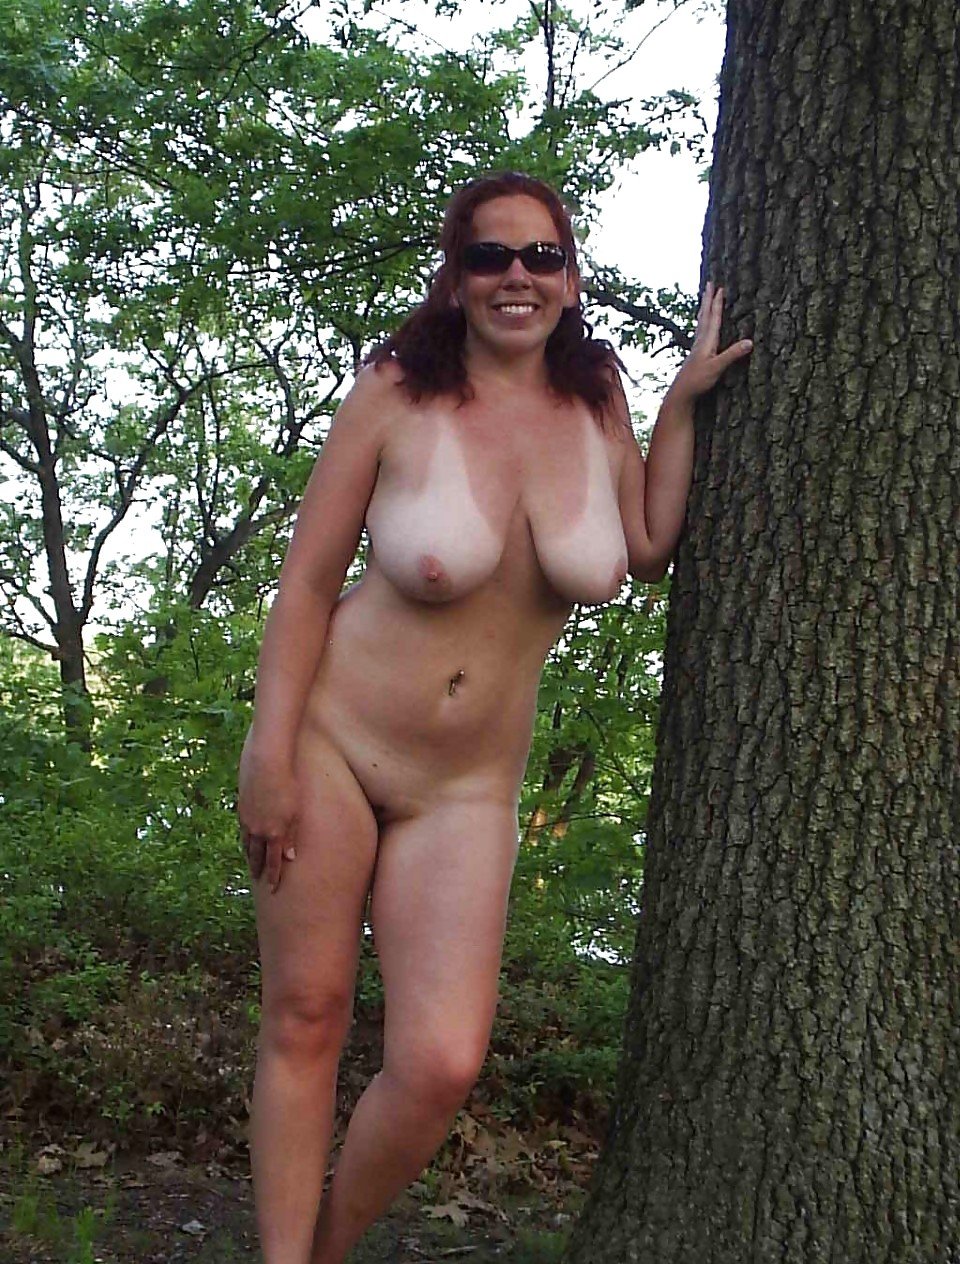 Nudist Women Photos of the Day 02-10-12 - GOOD NAKED